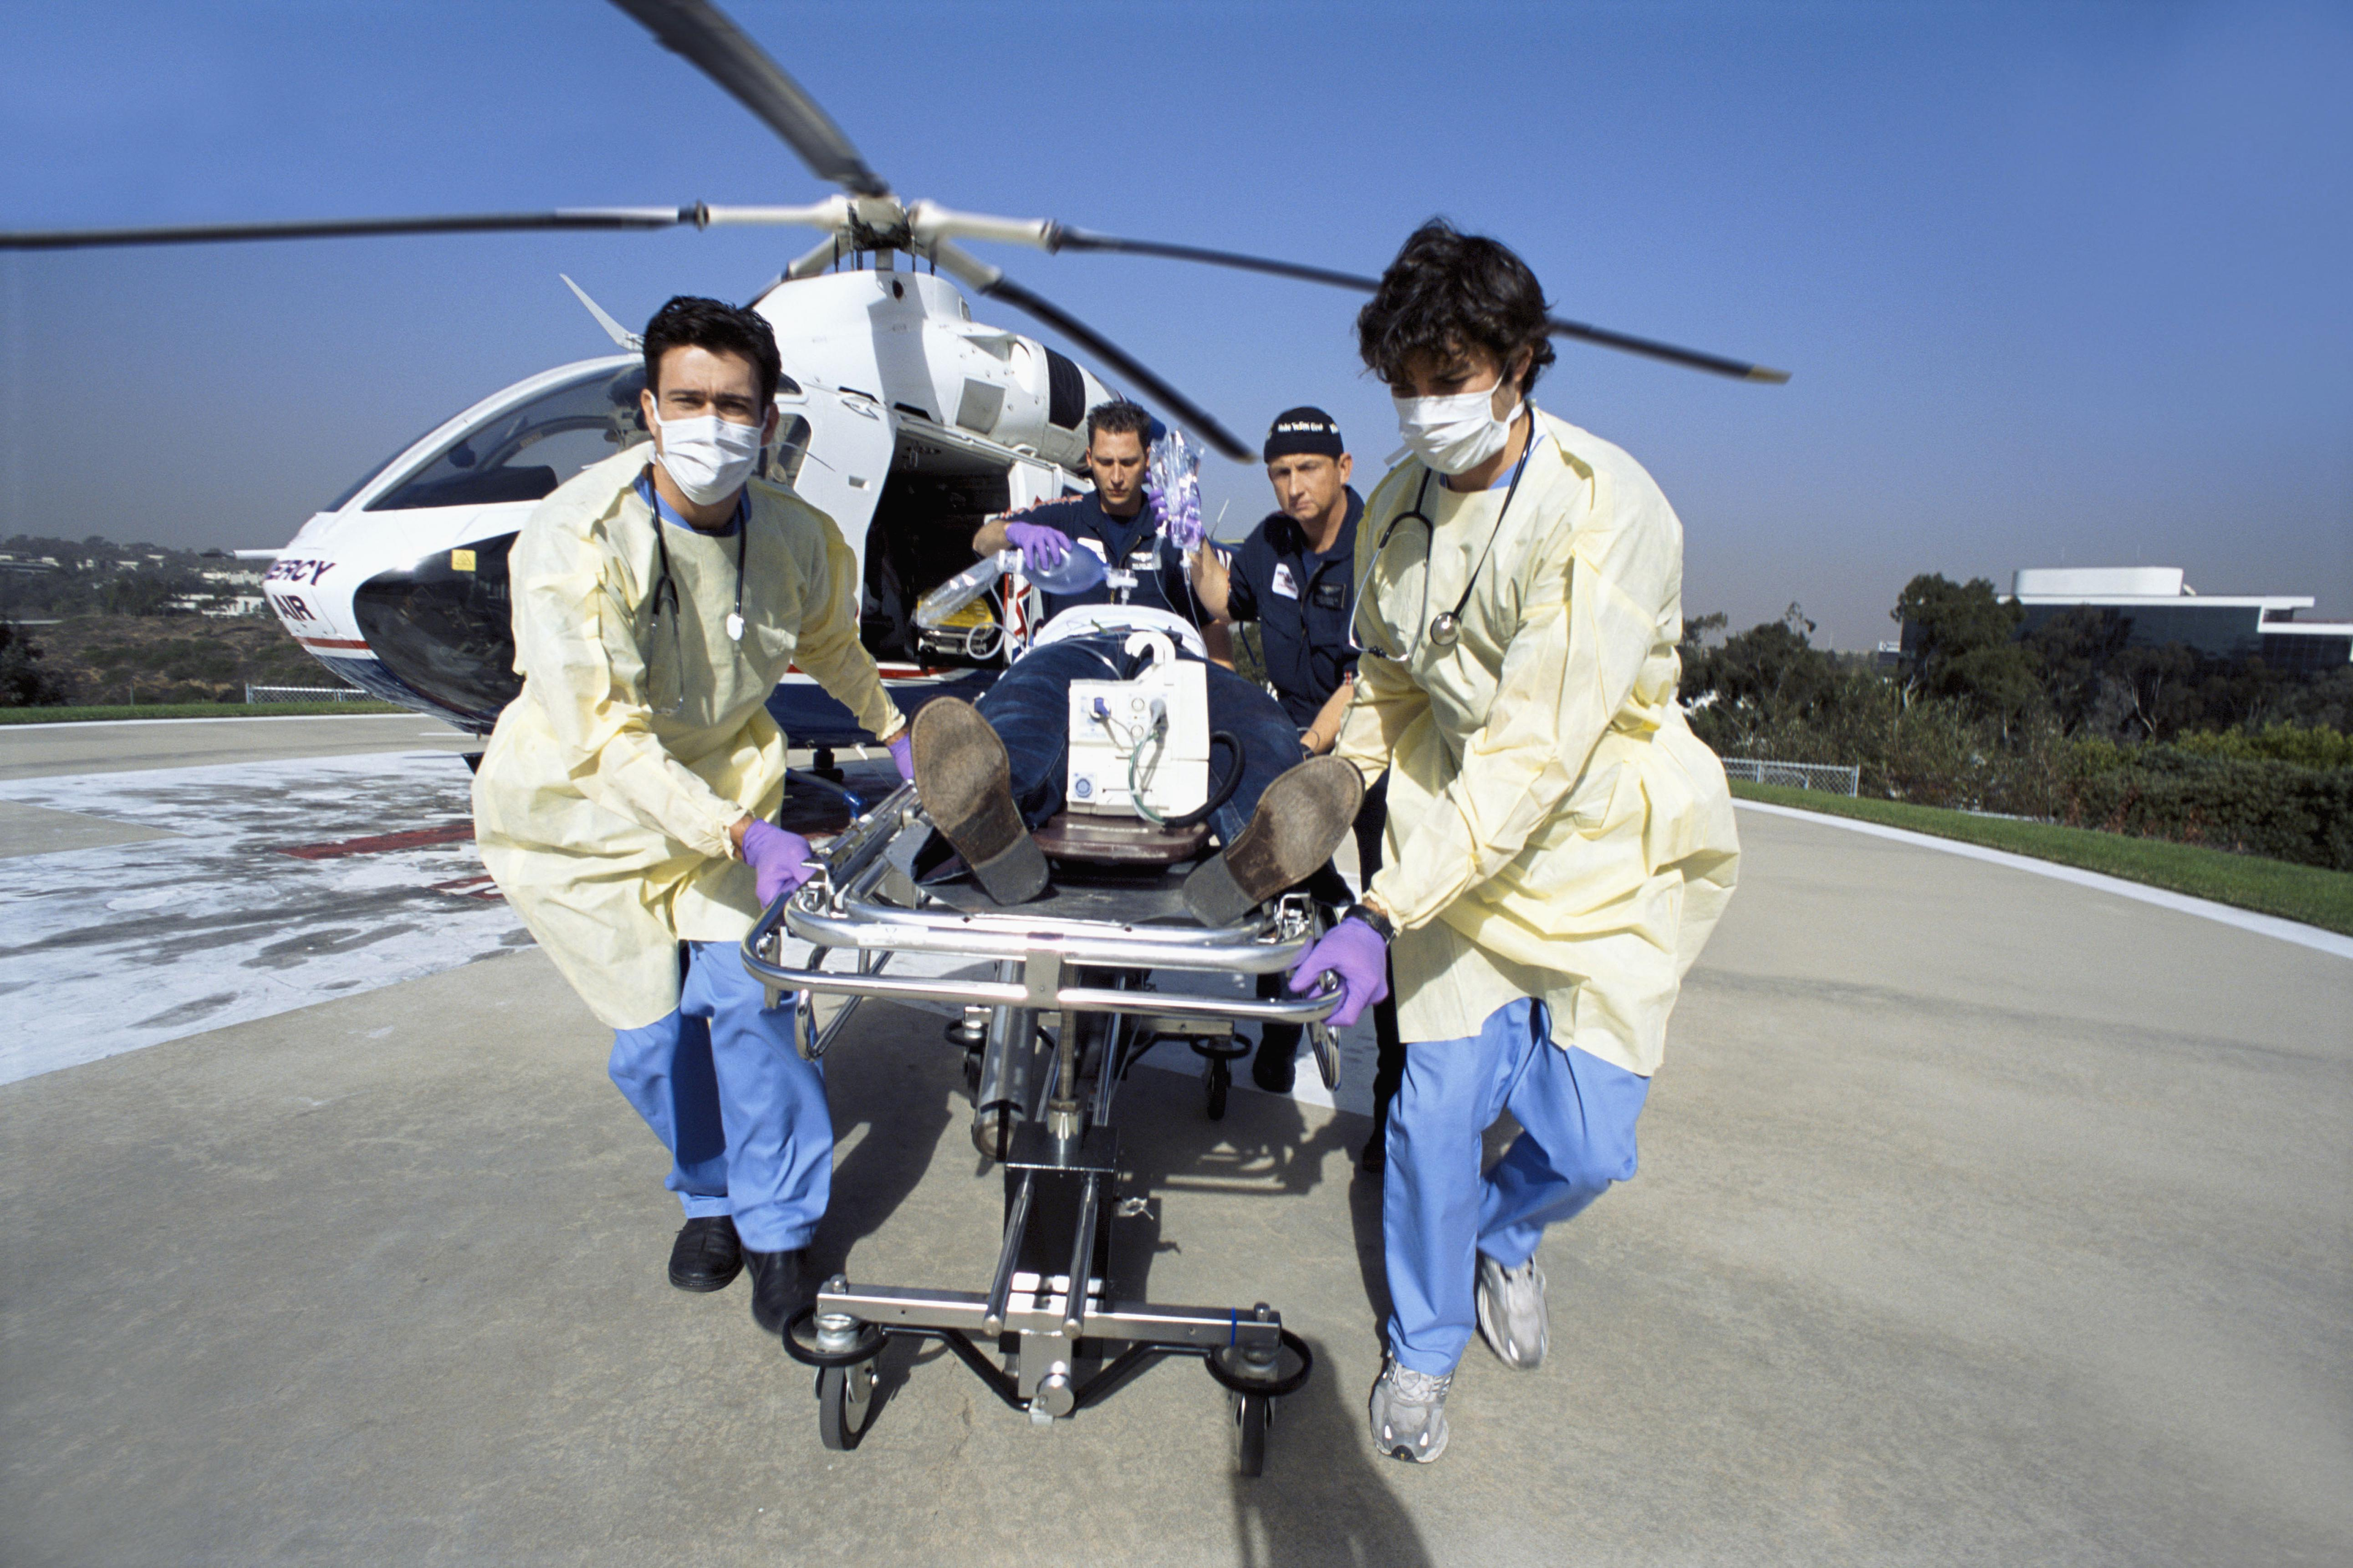 Doctors and paramedics rushing patient on gurney from emergency airlift helicopter